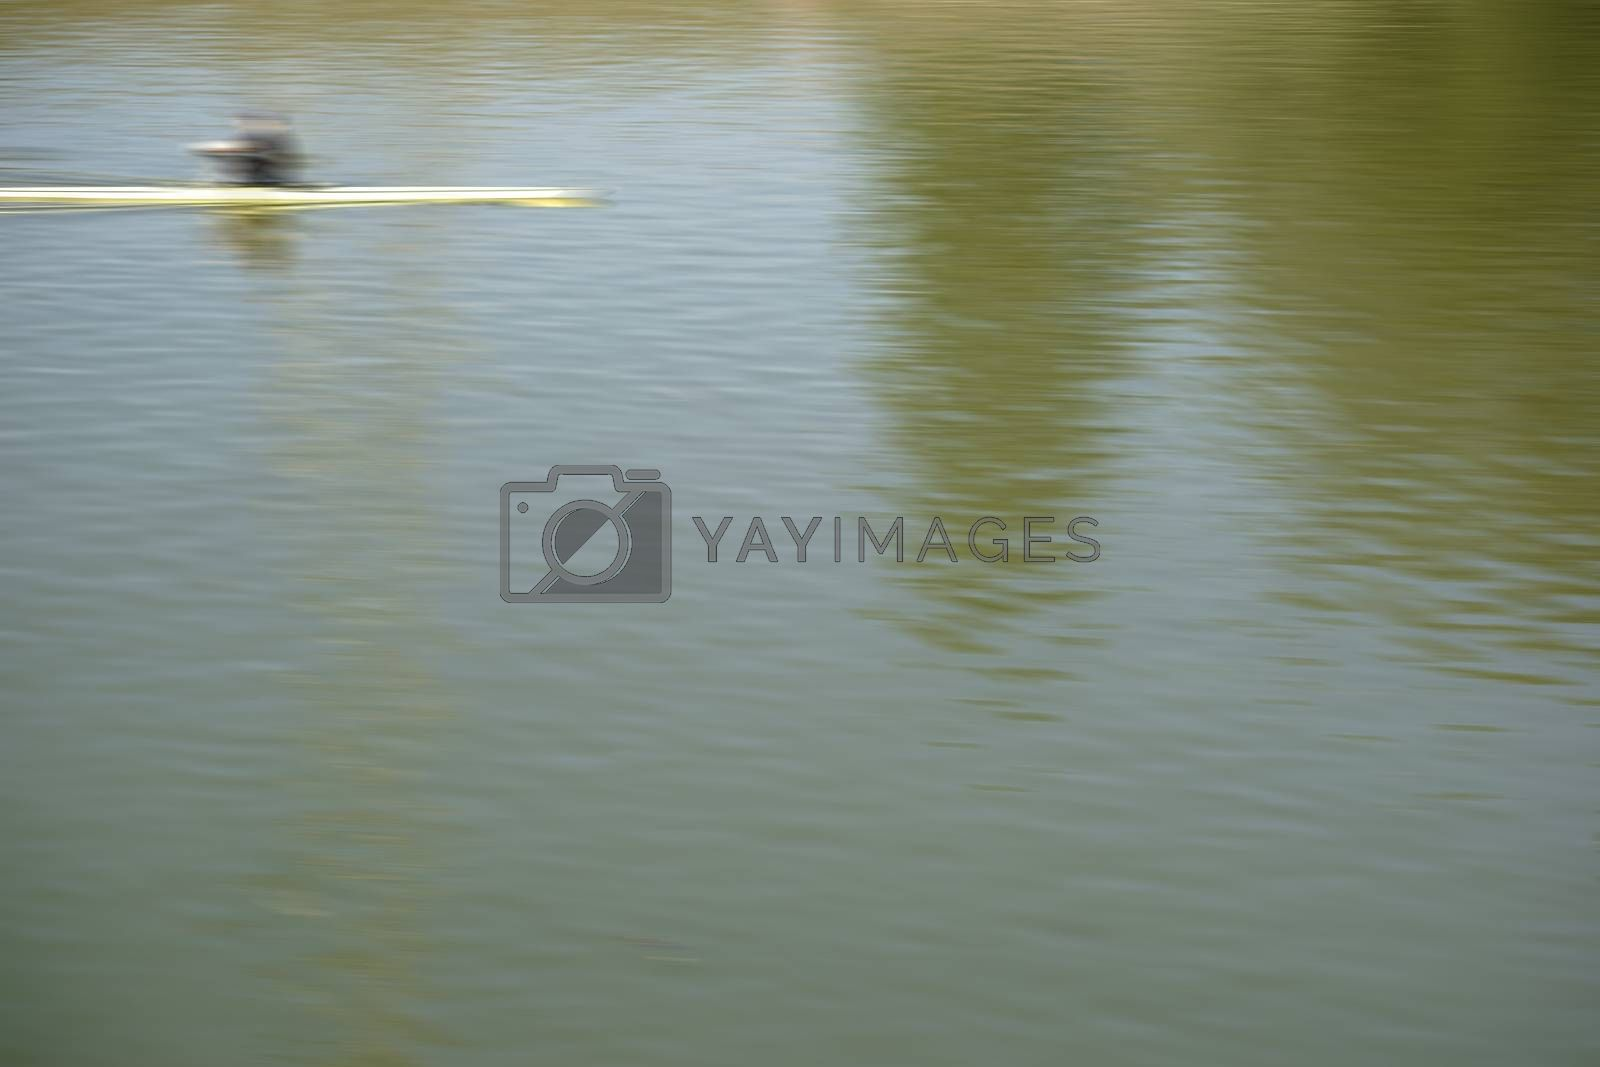 A blurred sports rowing boat cuts through a abstract water surface.